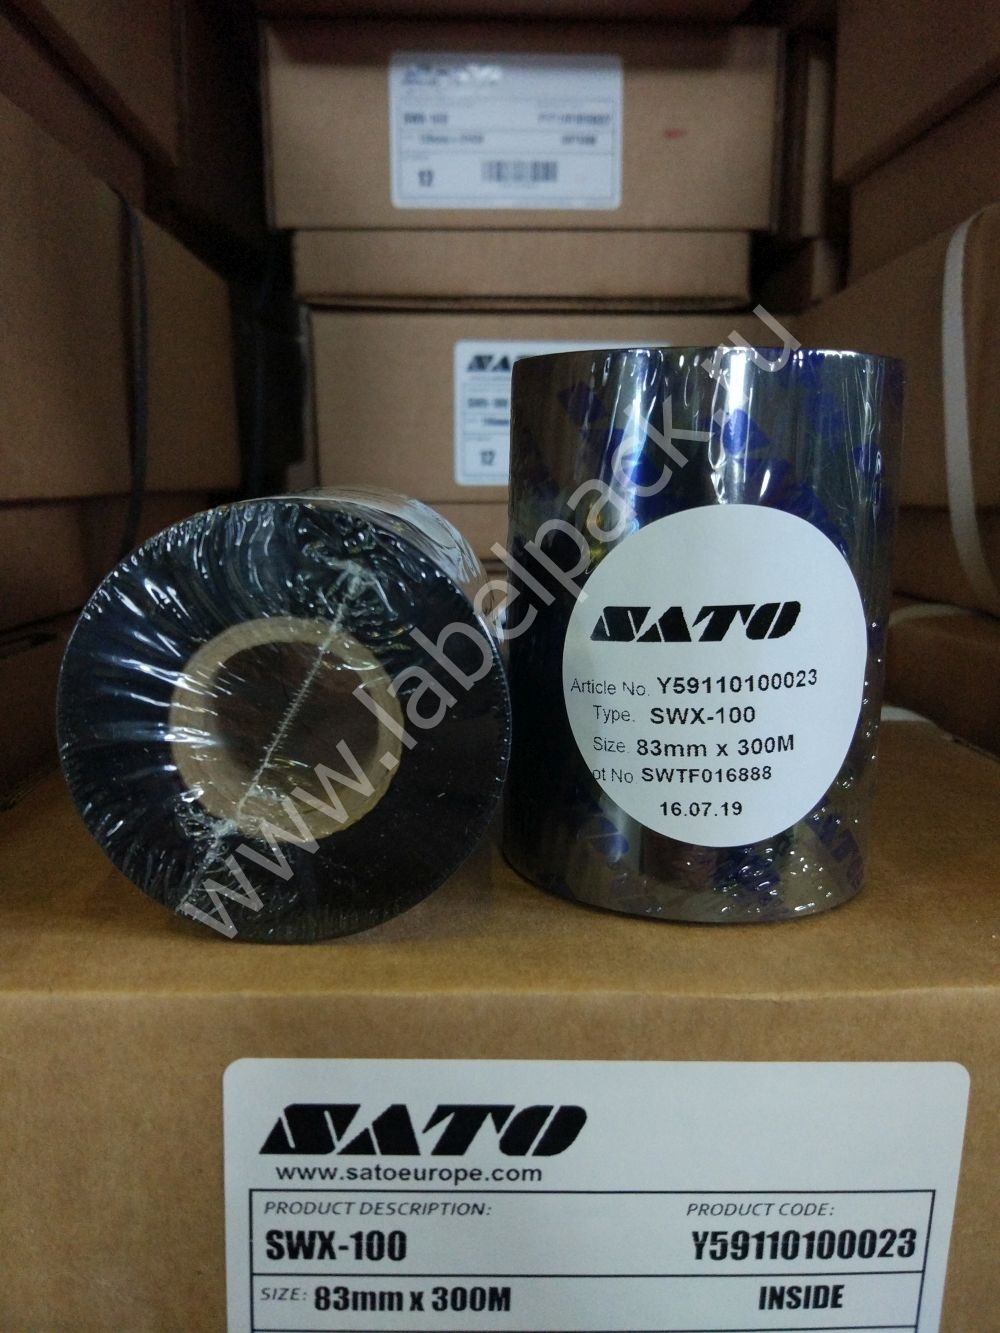 5df87d7cf0cb6 Y59110100023 2 - Риббон - SATO SWX100 WAX 83 x 300 IN